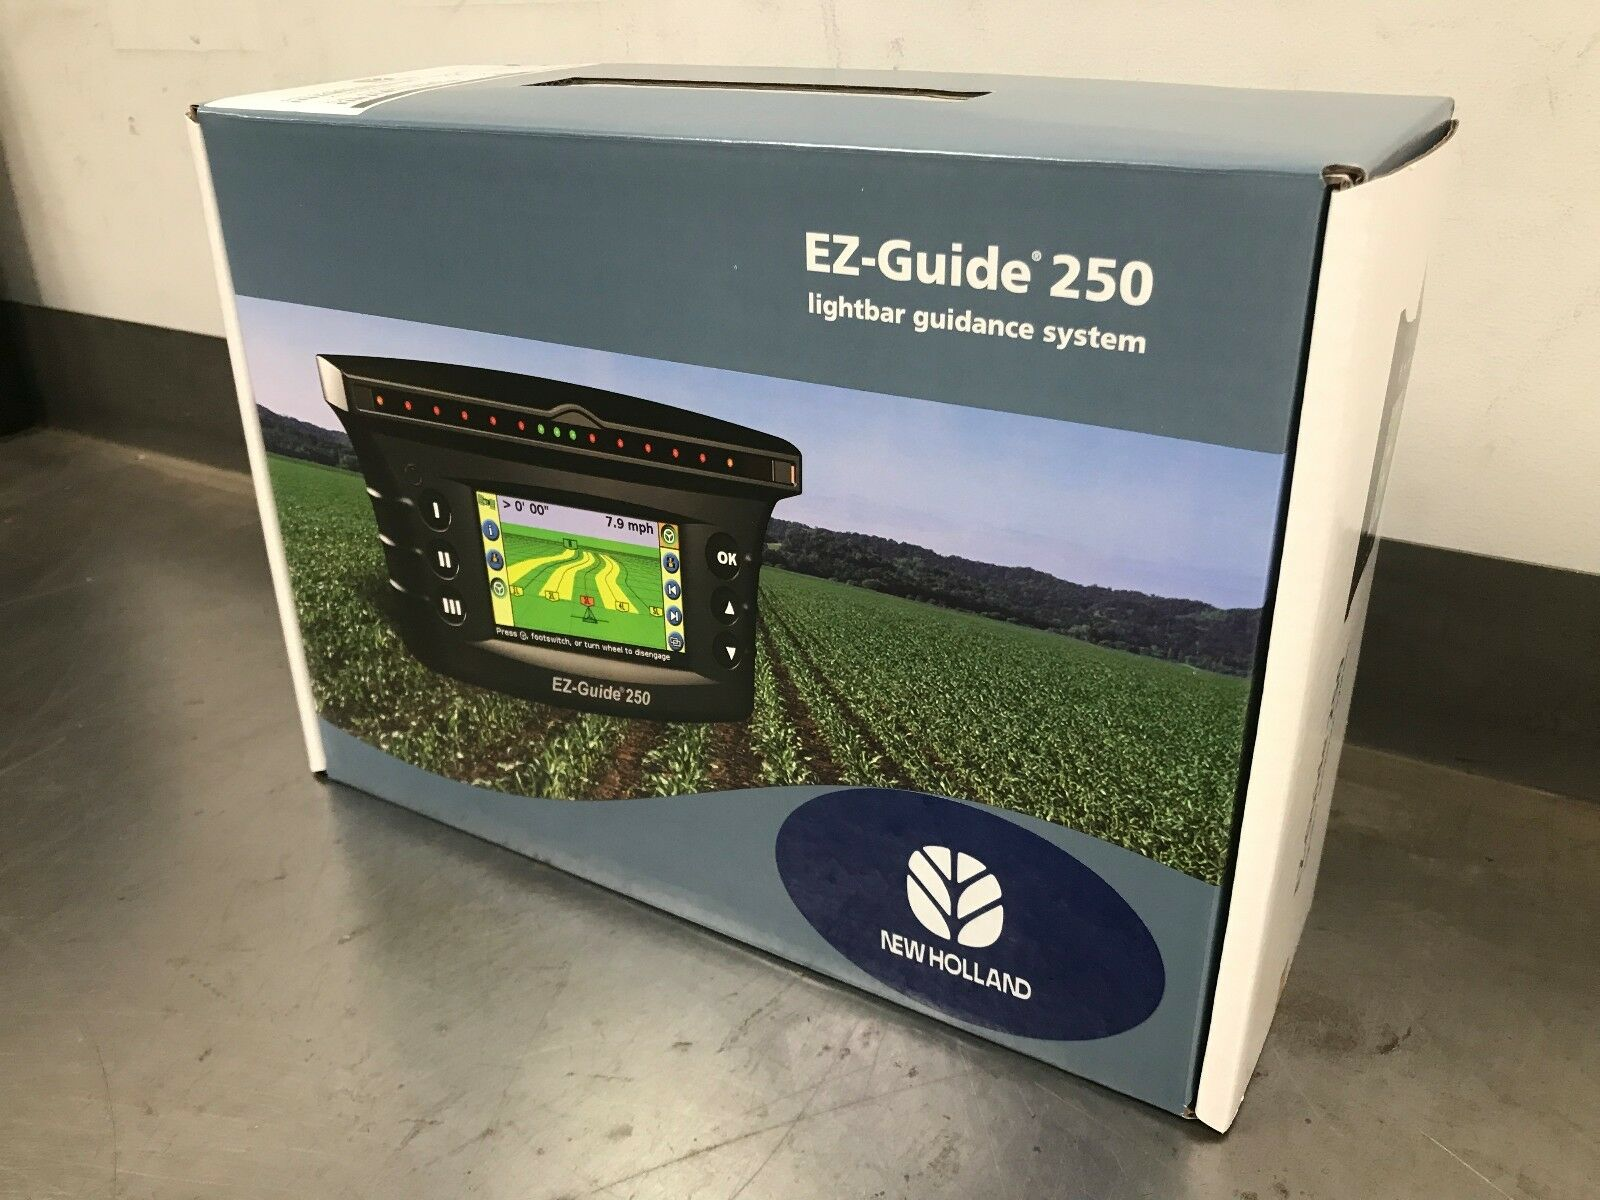 New trimble ez guide 250 gps lightbar with mini mag antenna 92000 1 of 4 see more aloadofball Images